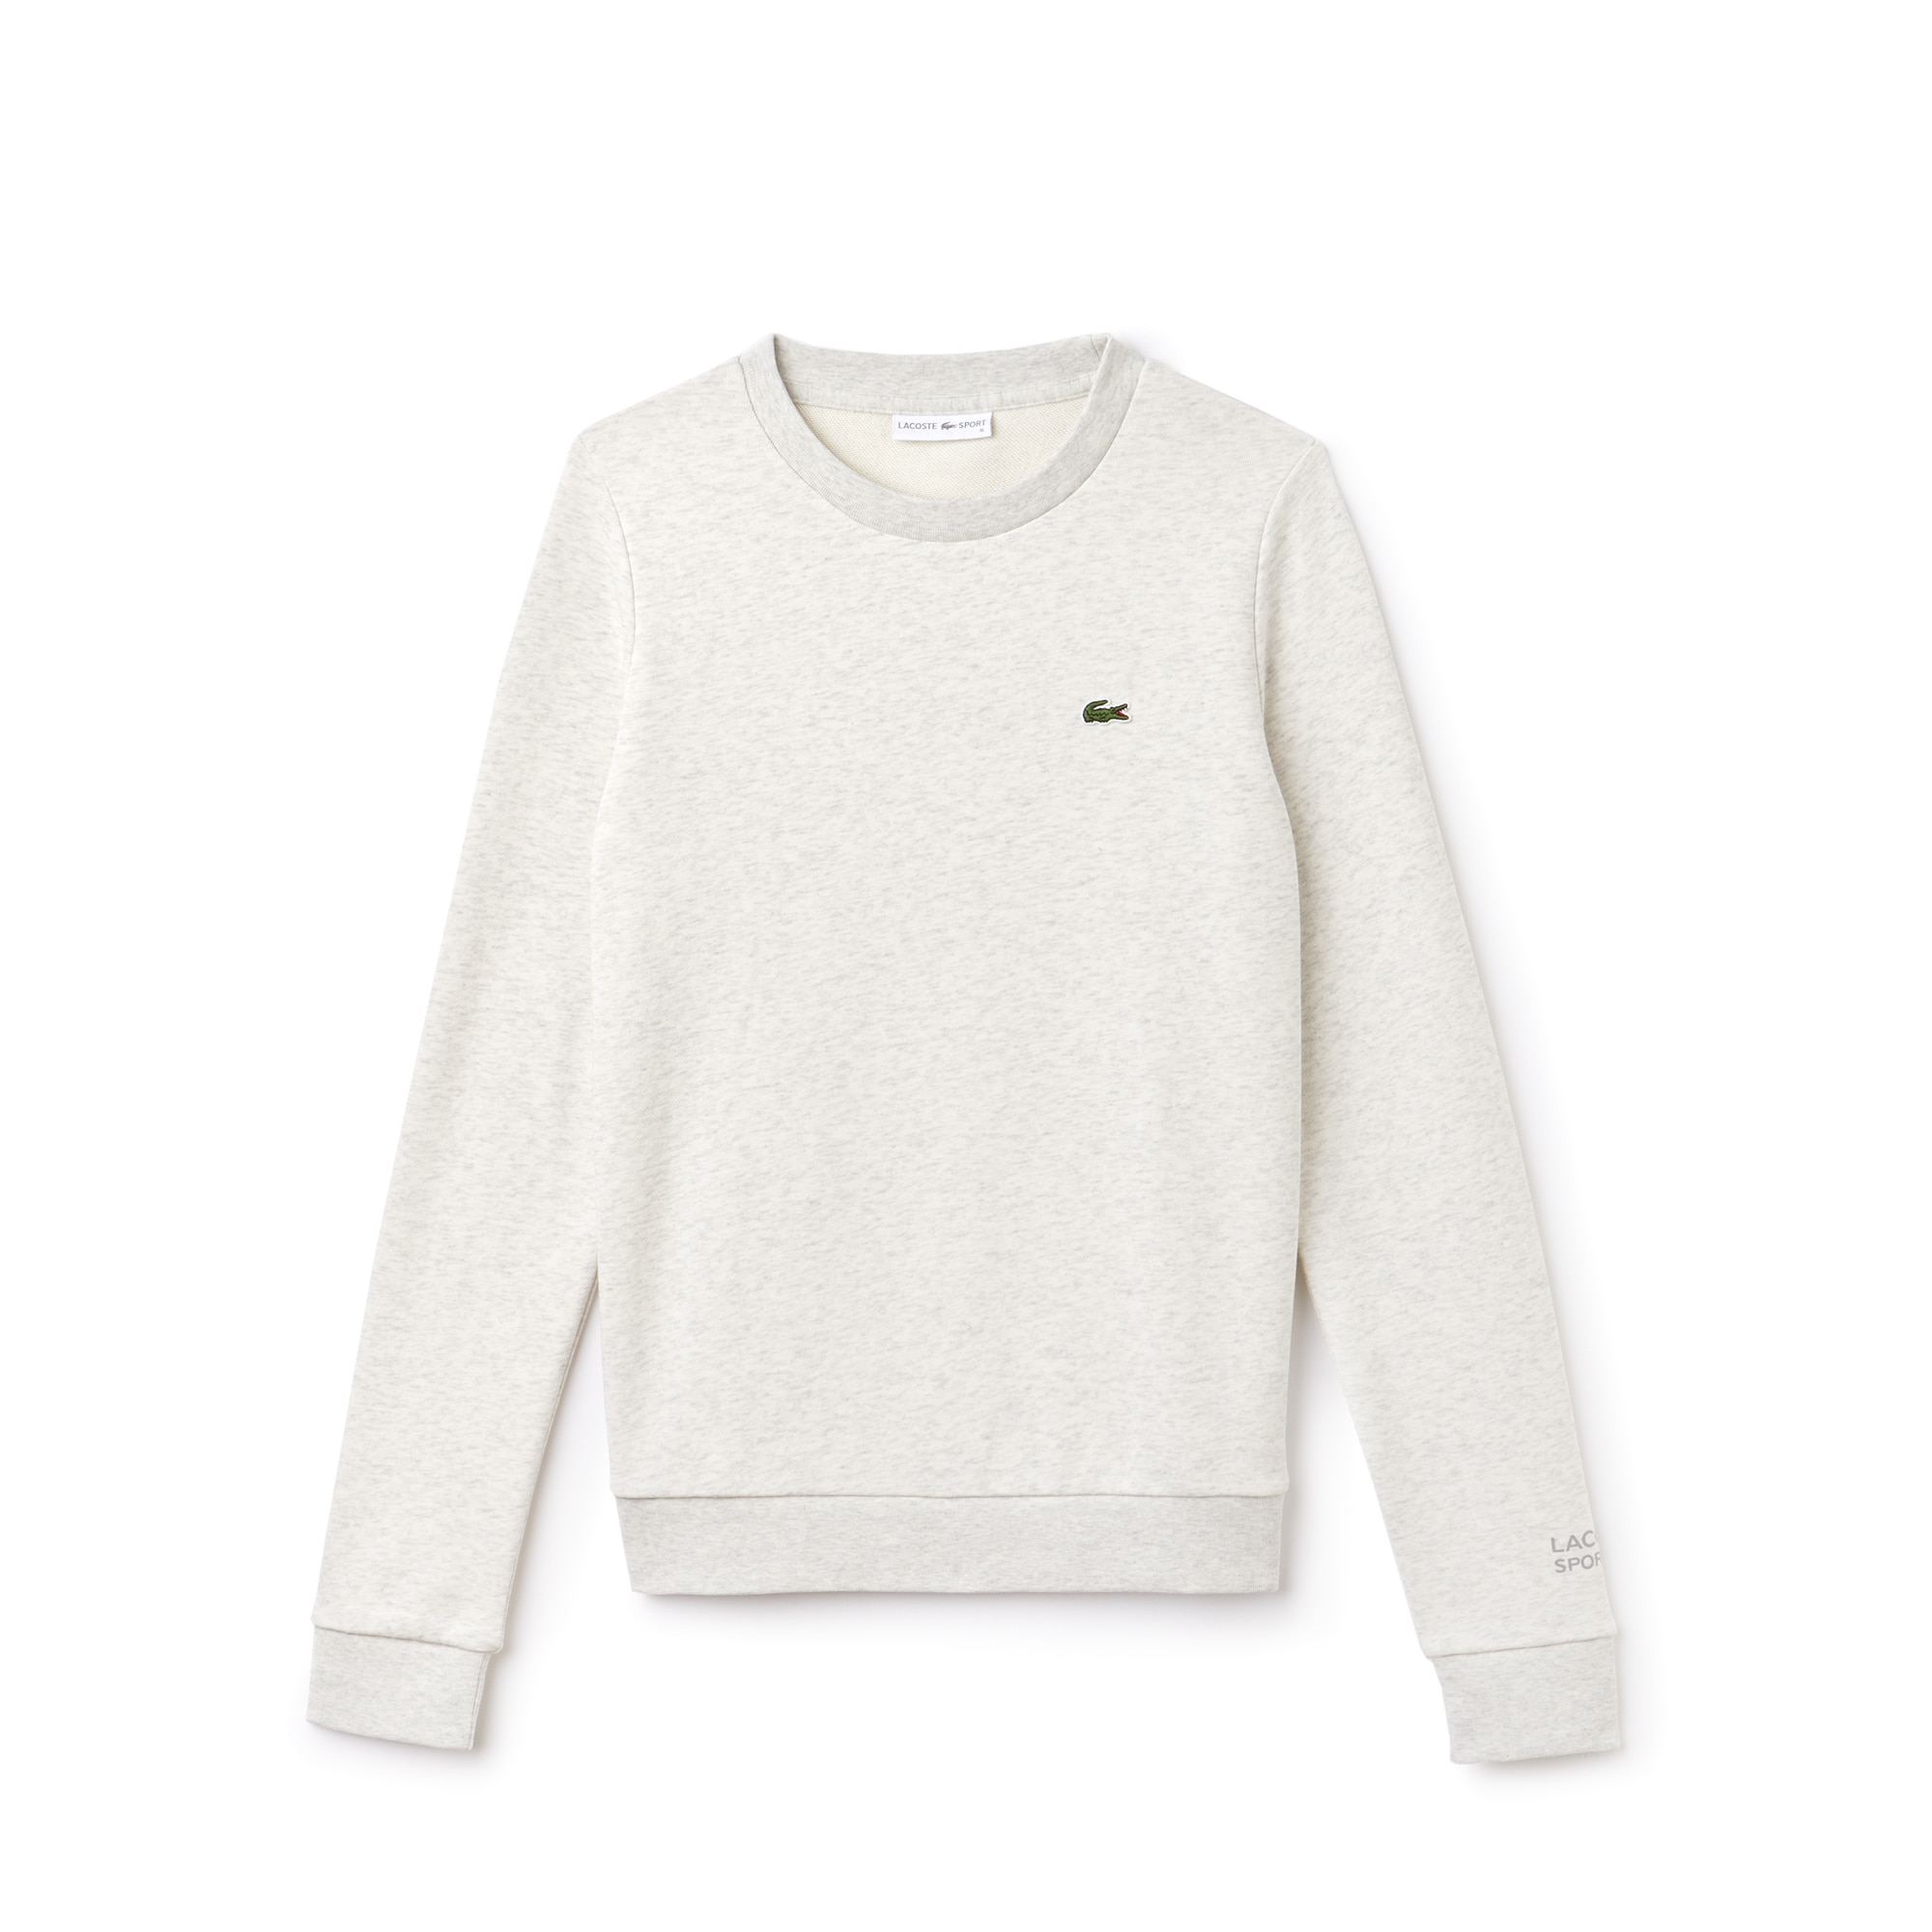 라코스테 스포츠 테니스 코튼 플리스 스웻셔츠 Lacoste Womens SPORT Tennis Cotton Fleece Sweatshirt, alpes grey chine SF7975-51